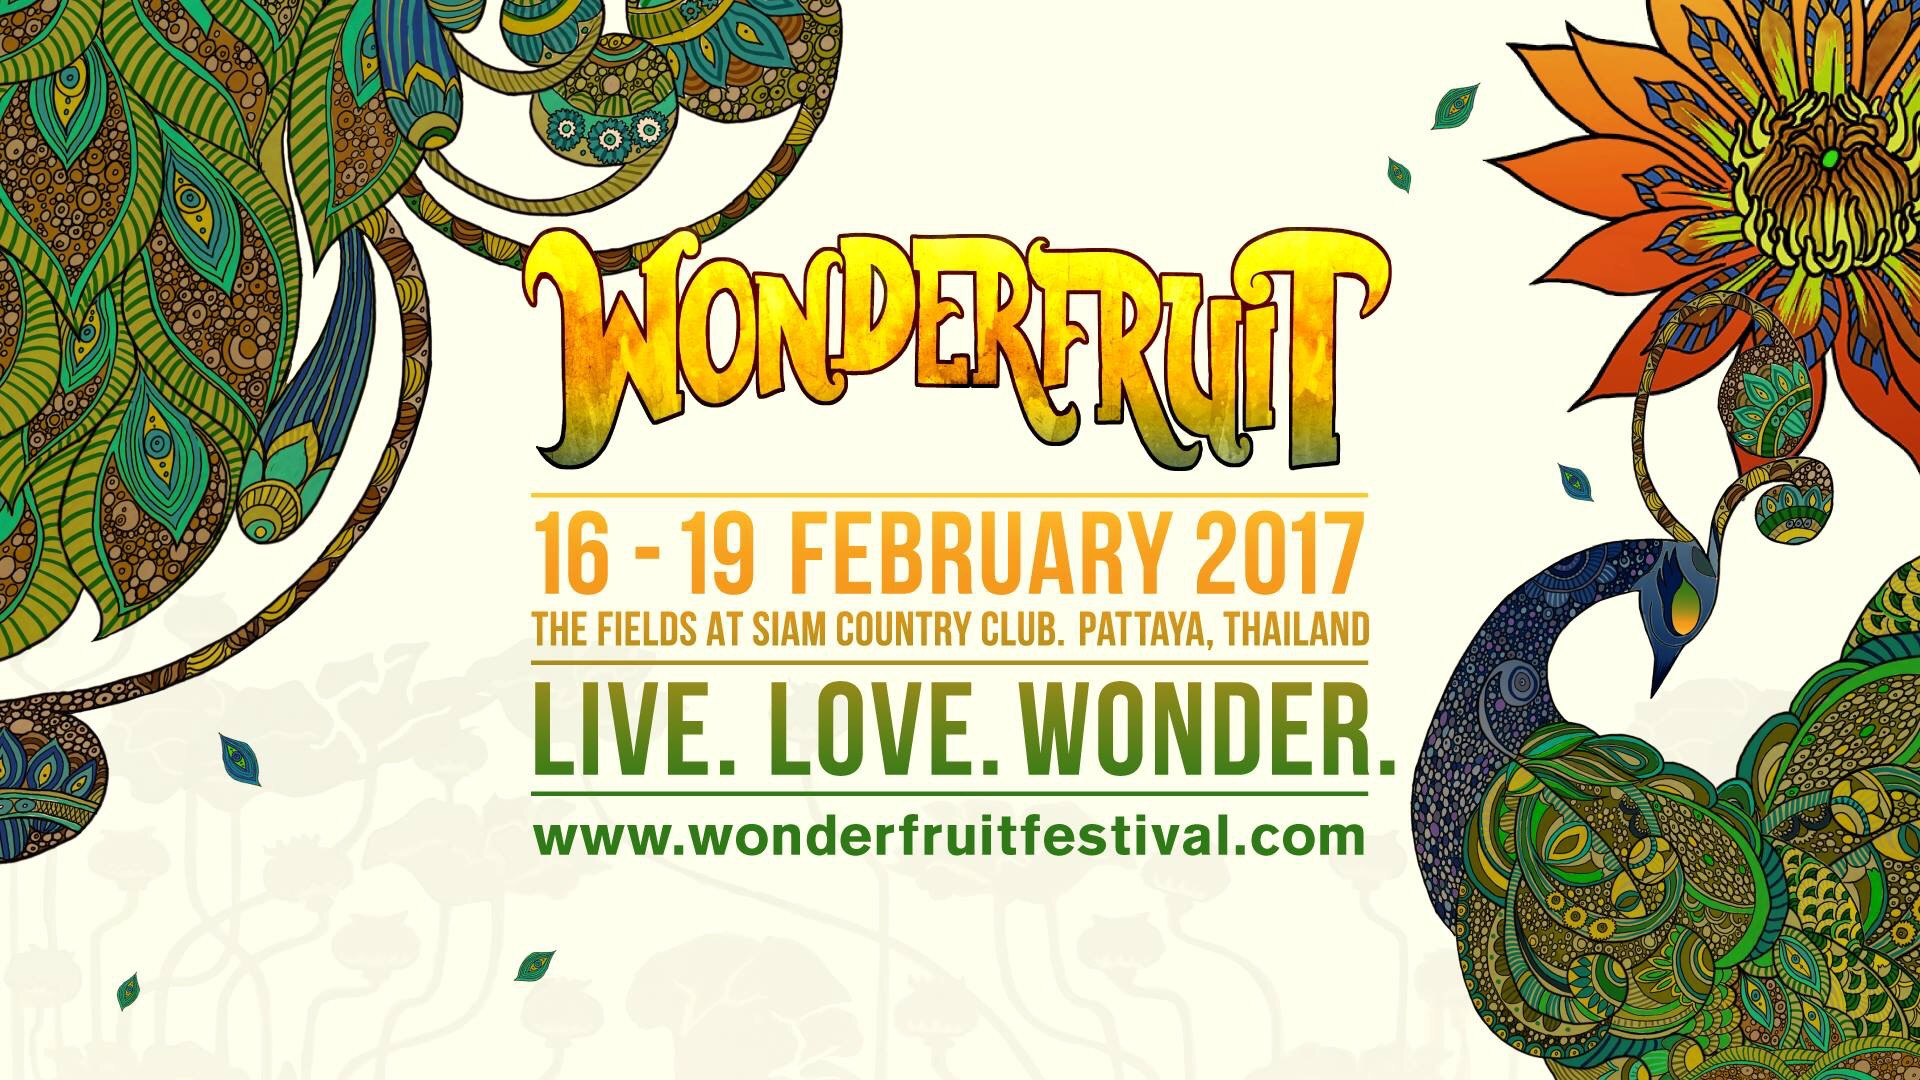 Wonderfruit Festival from 16-19 February 2017 in Pattaya